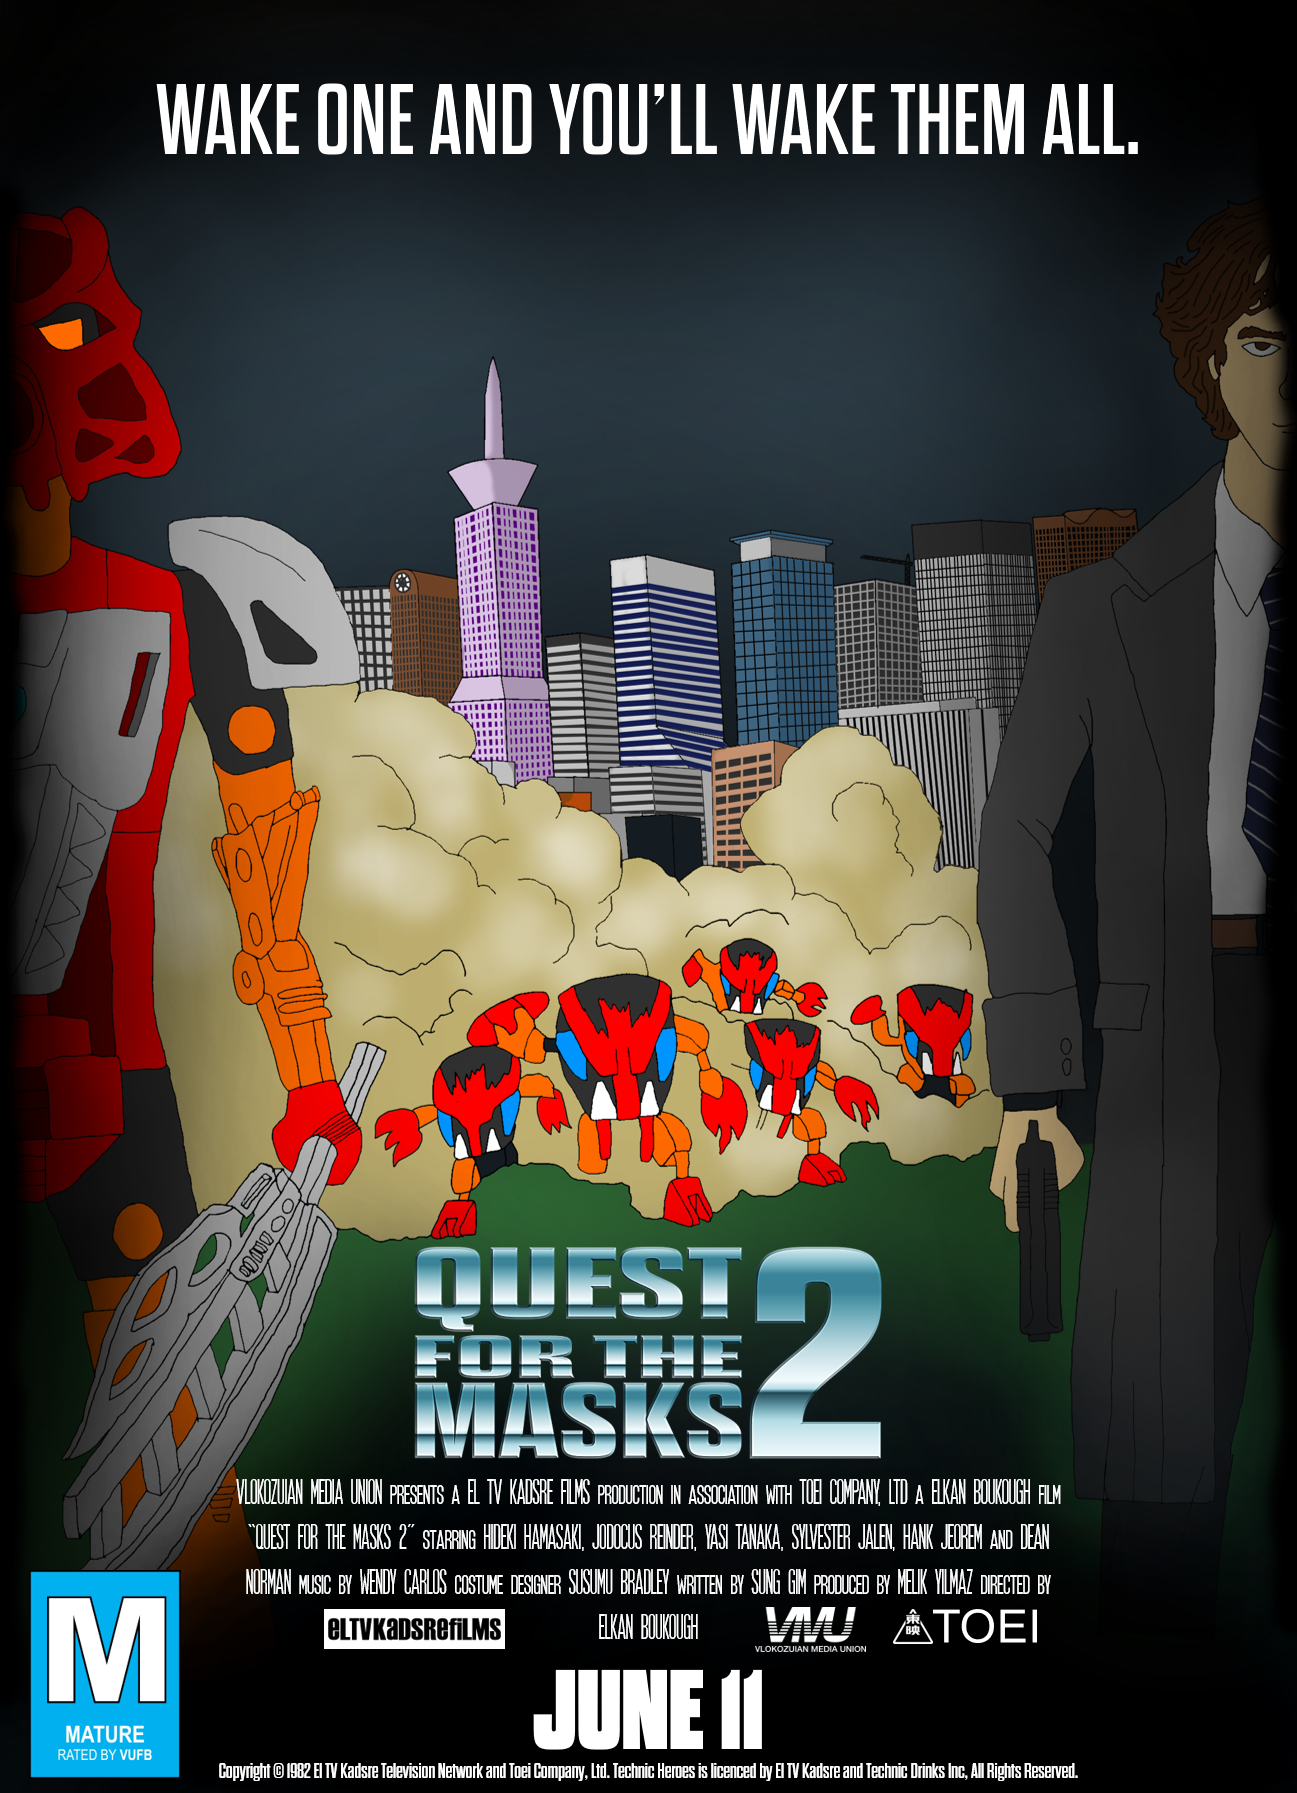 Quest for the Masks 2